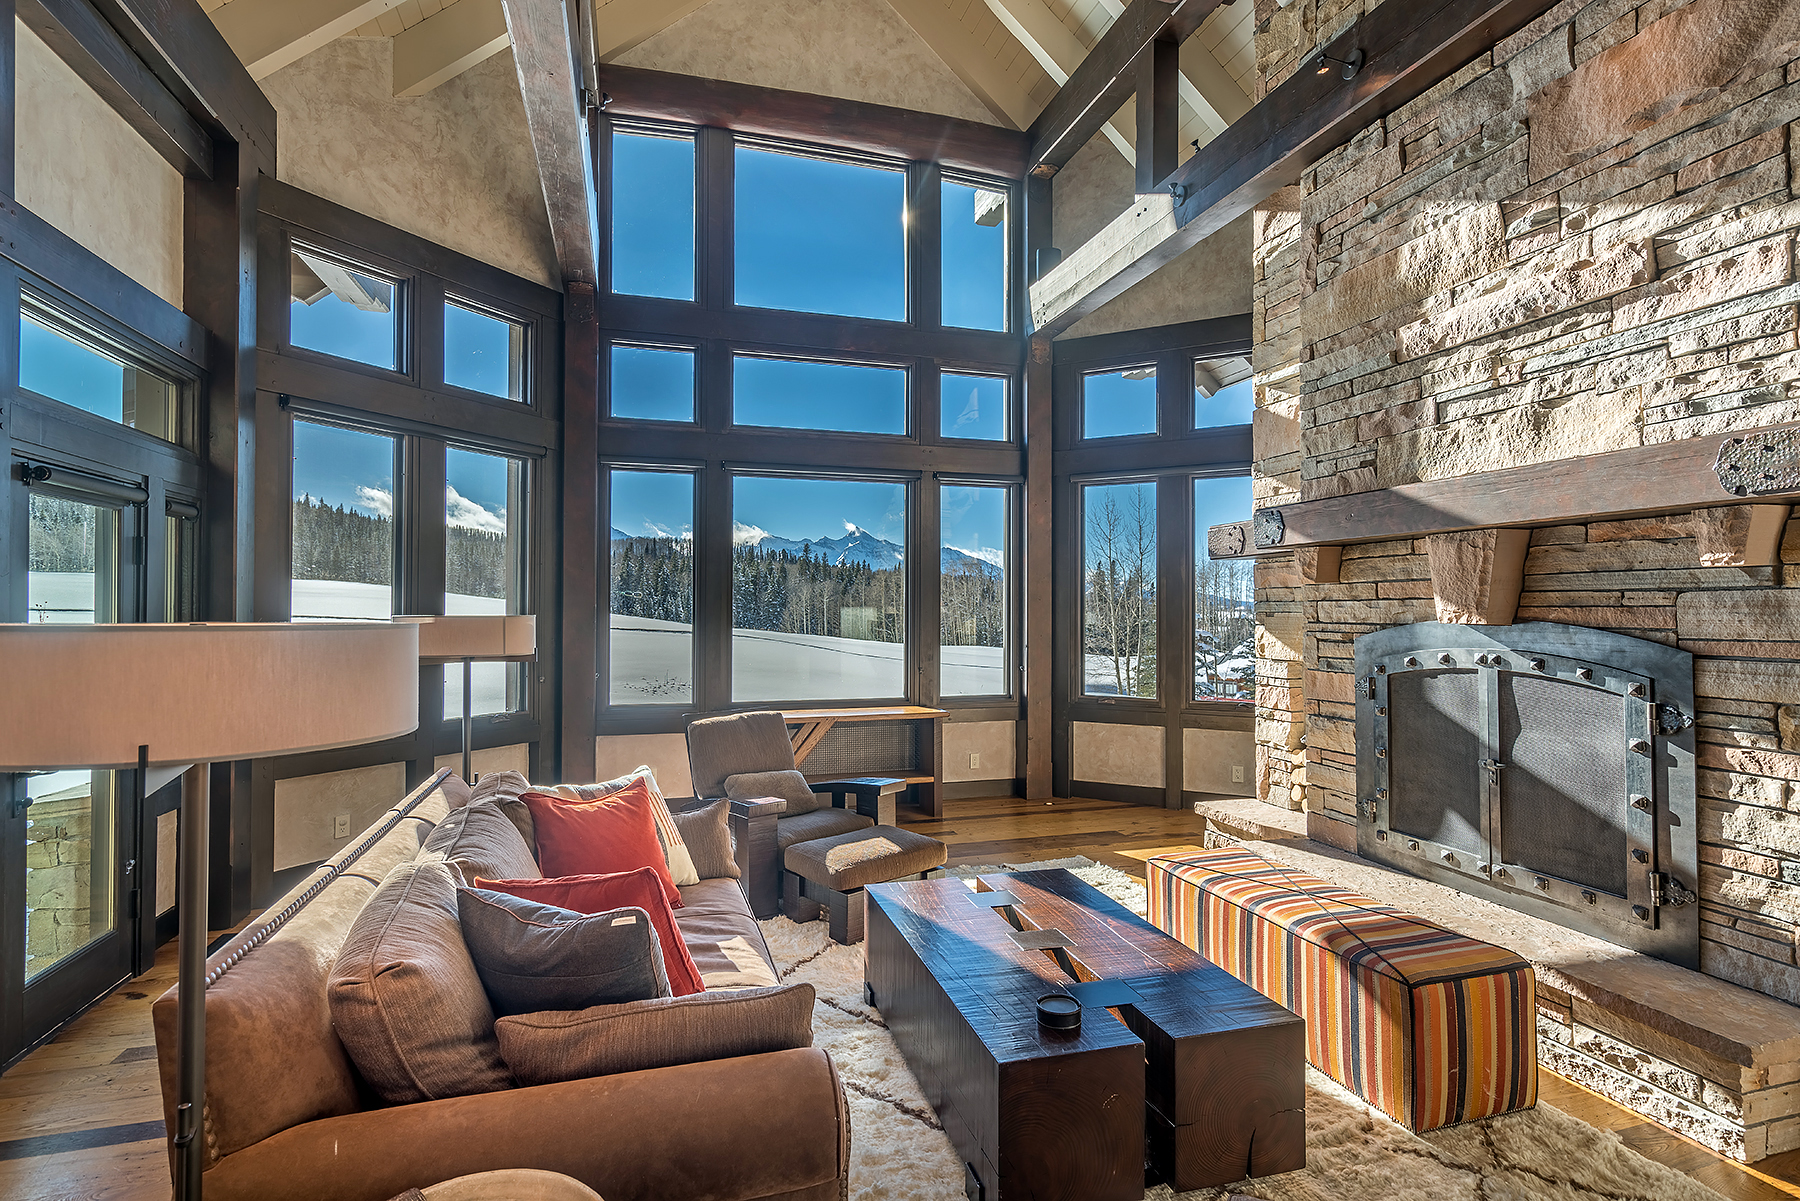 Single Family Home for Sale at 131 Hood Park Telluride, Colorado, 81435 United States